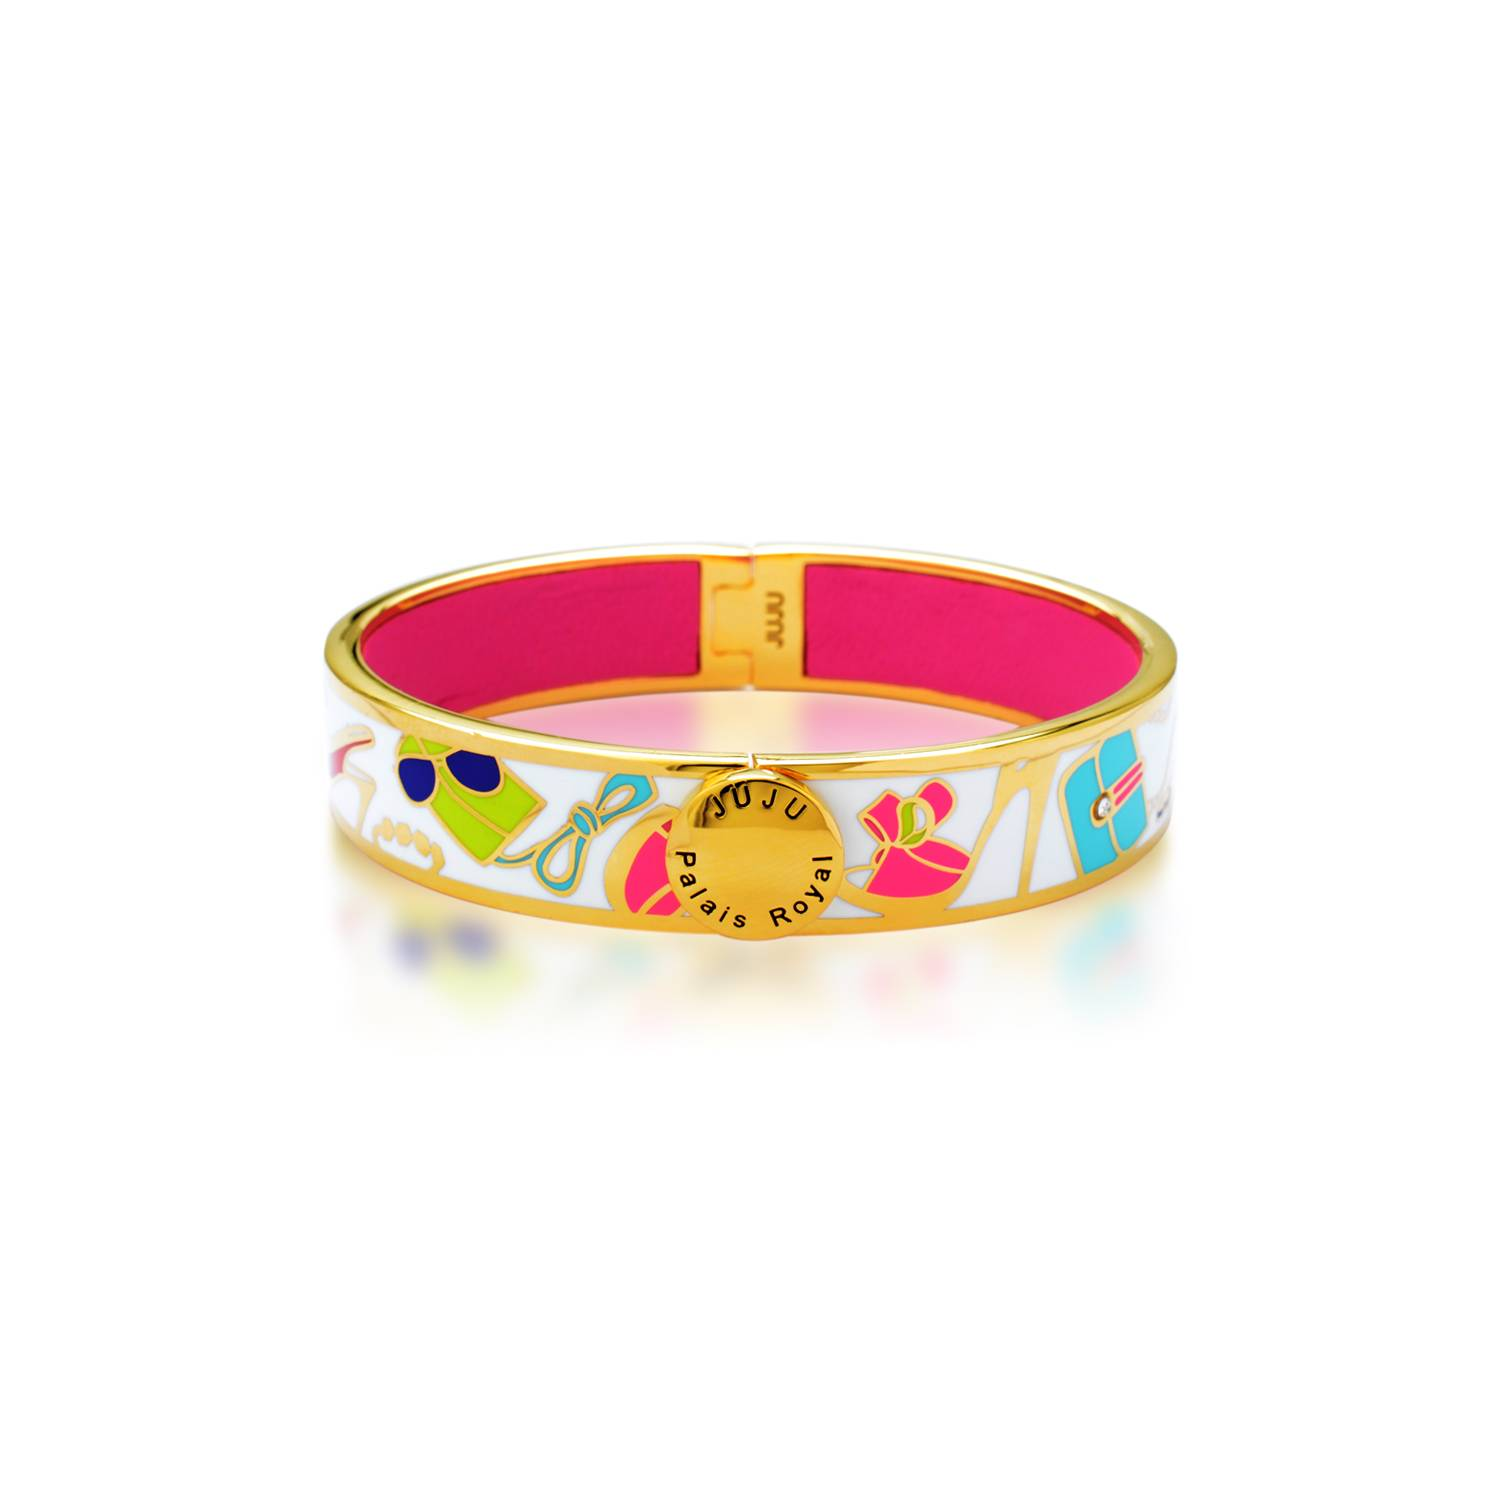 City bangle-18K gold plating metal bangle with enamel